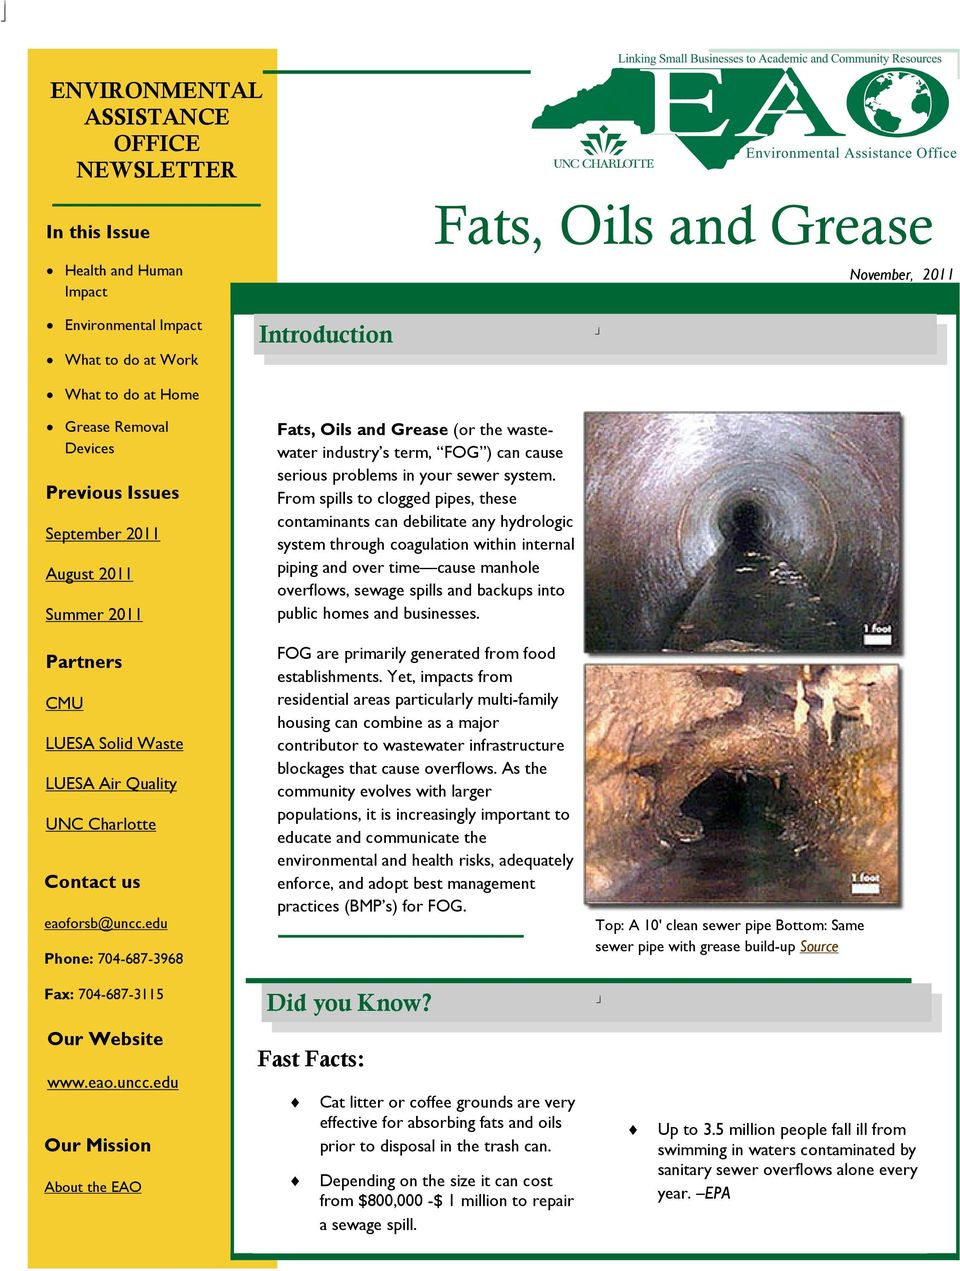 edu Phone: 704-687-3968 Fats, Oils and Grease (or the wastewater industry s term, FOG ) can cause serious problems in your sewer system.